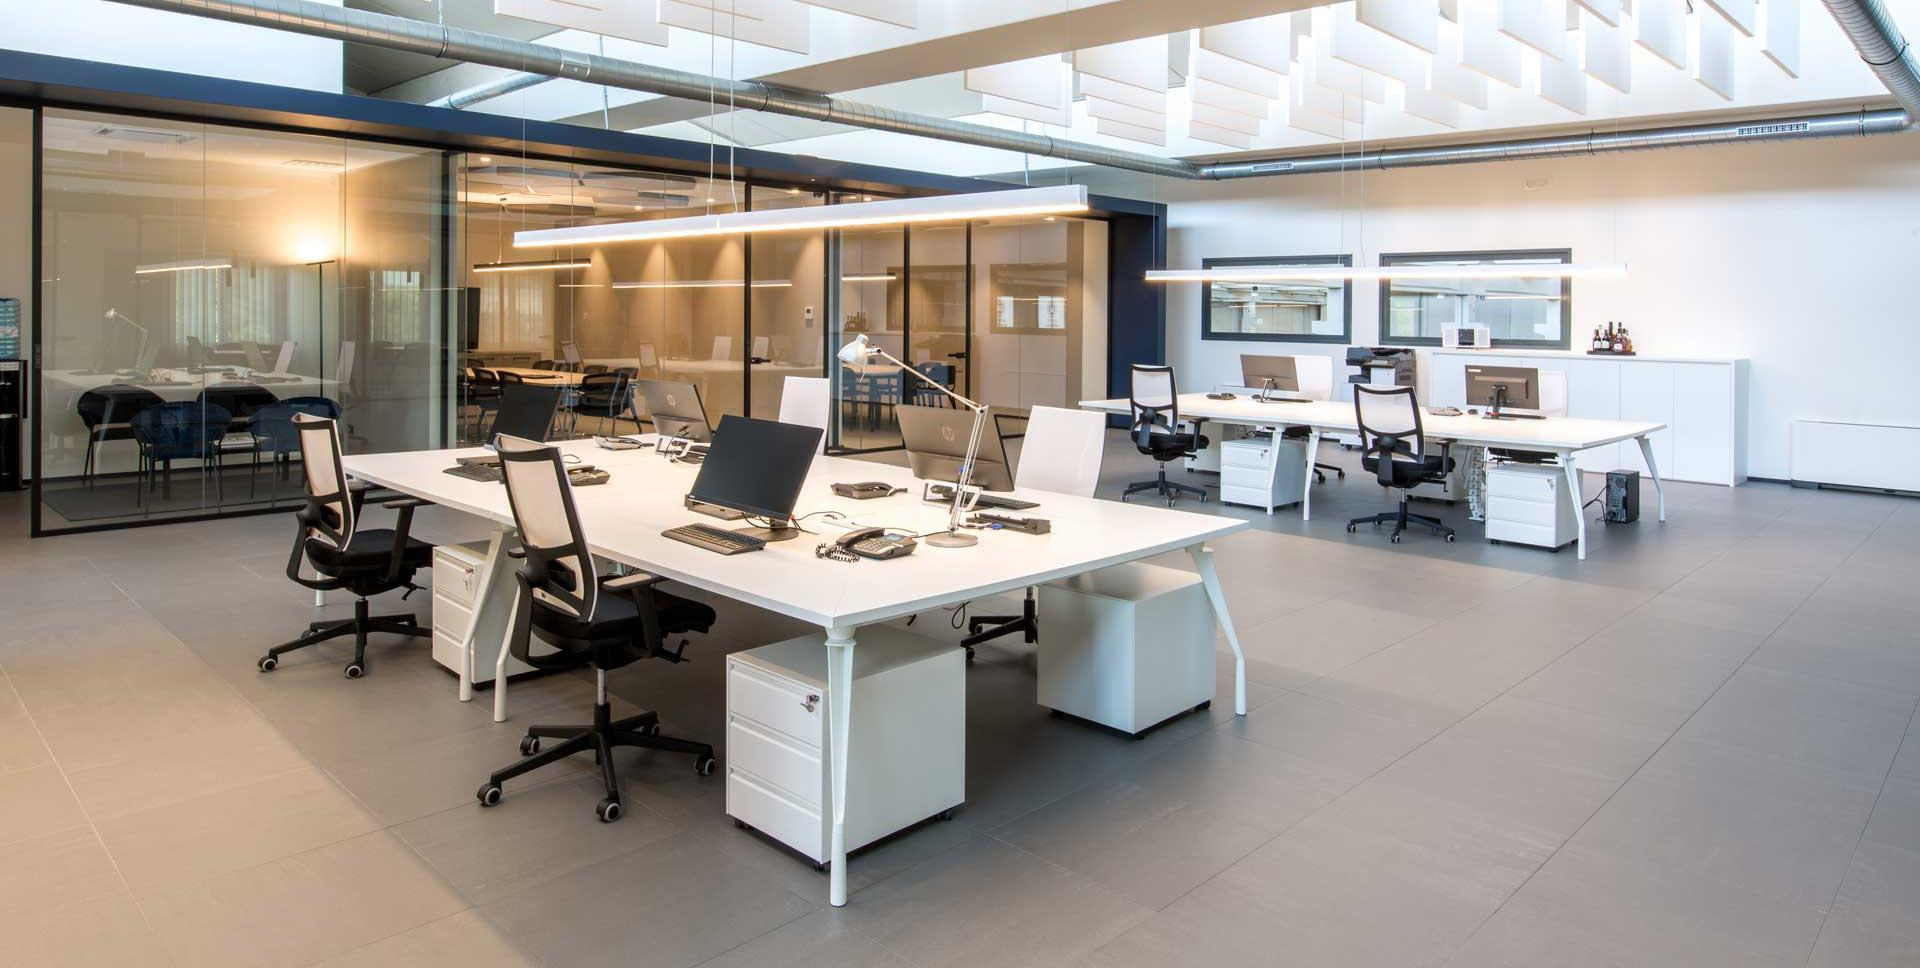 Dinamico operative desks with flat iron legs